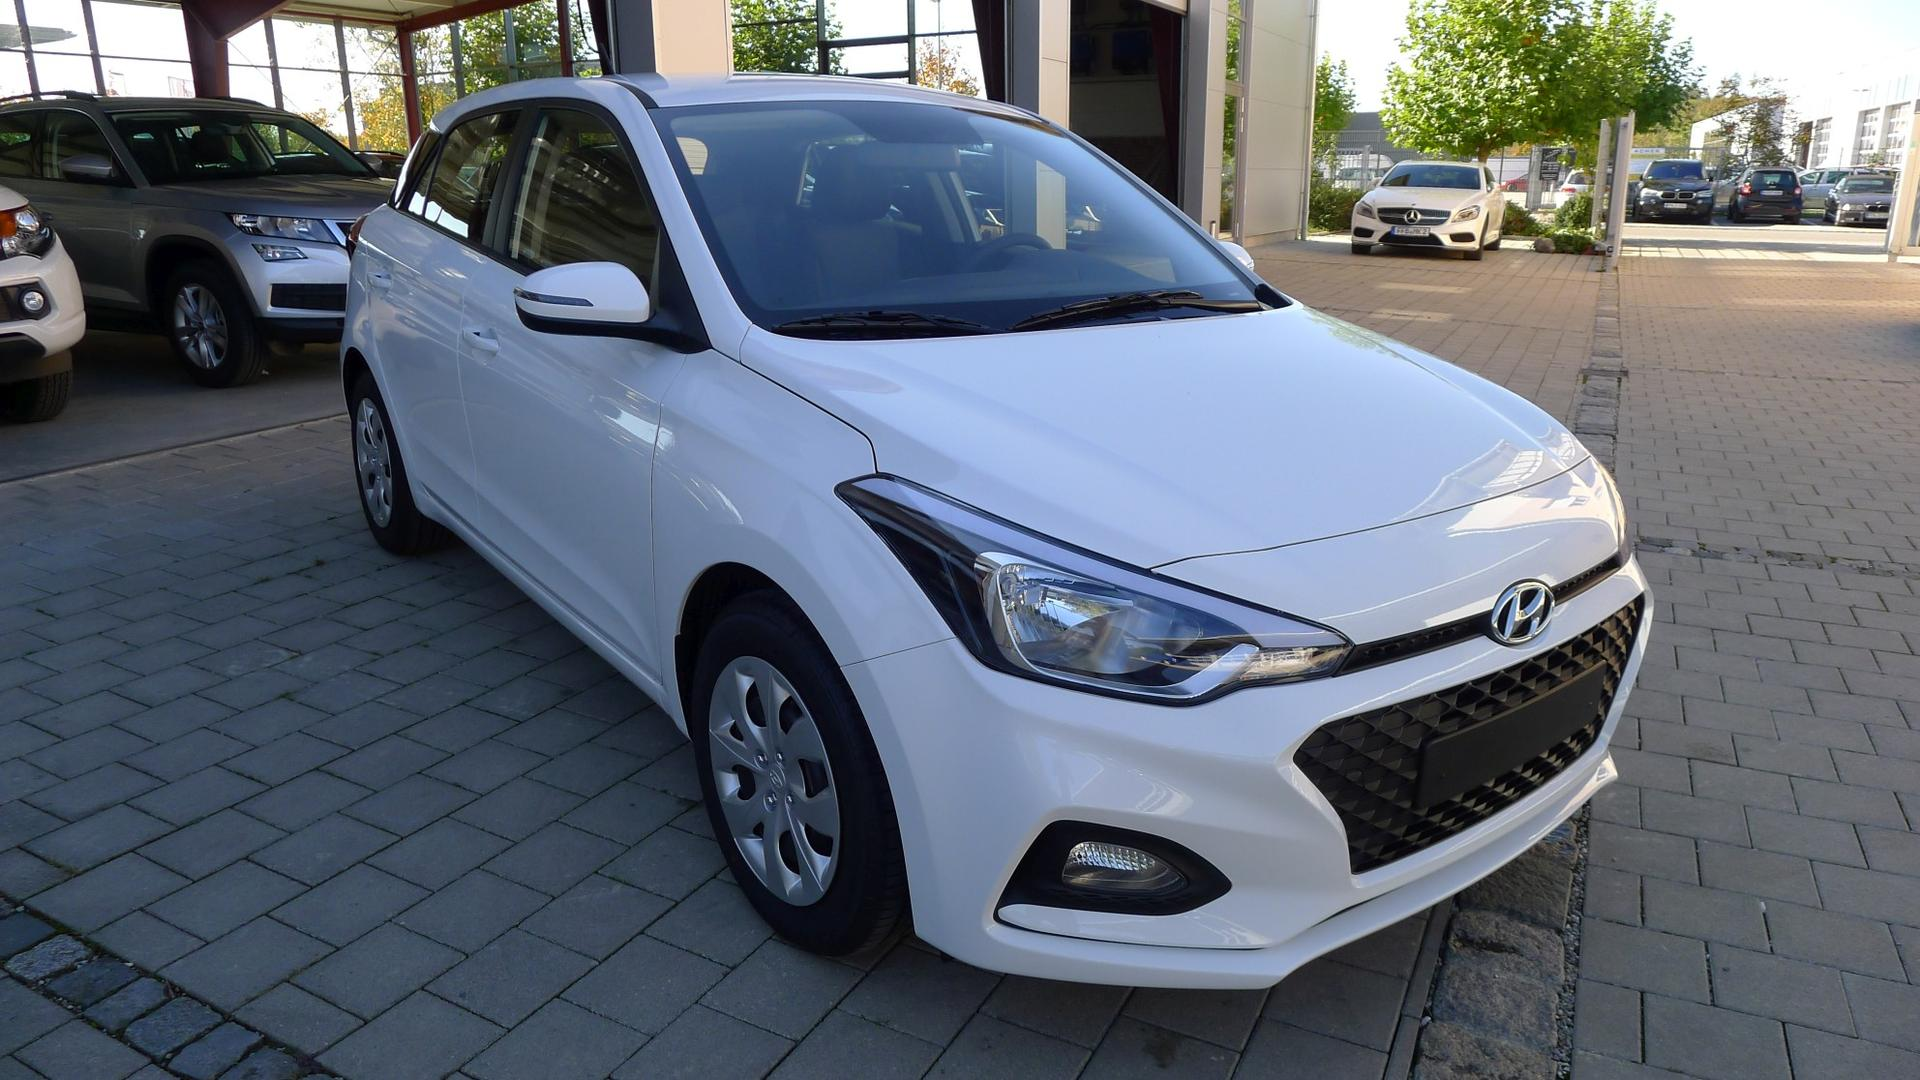 hyundai i20 neues modell 1 2 cool sound 55kw klima. Black Bedroom Furniture Sets. Home Design Ideas